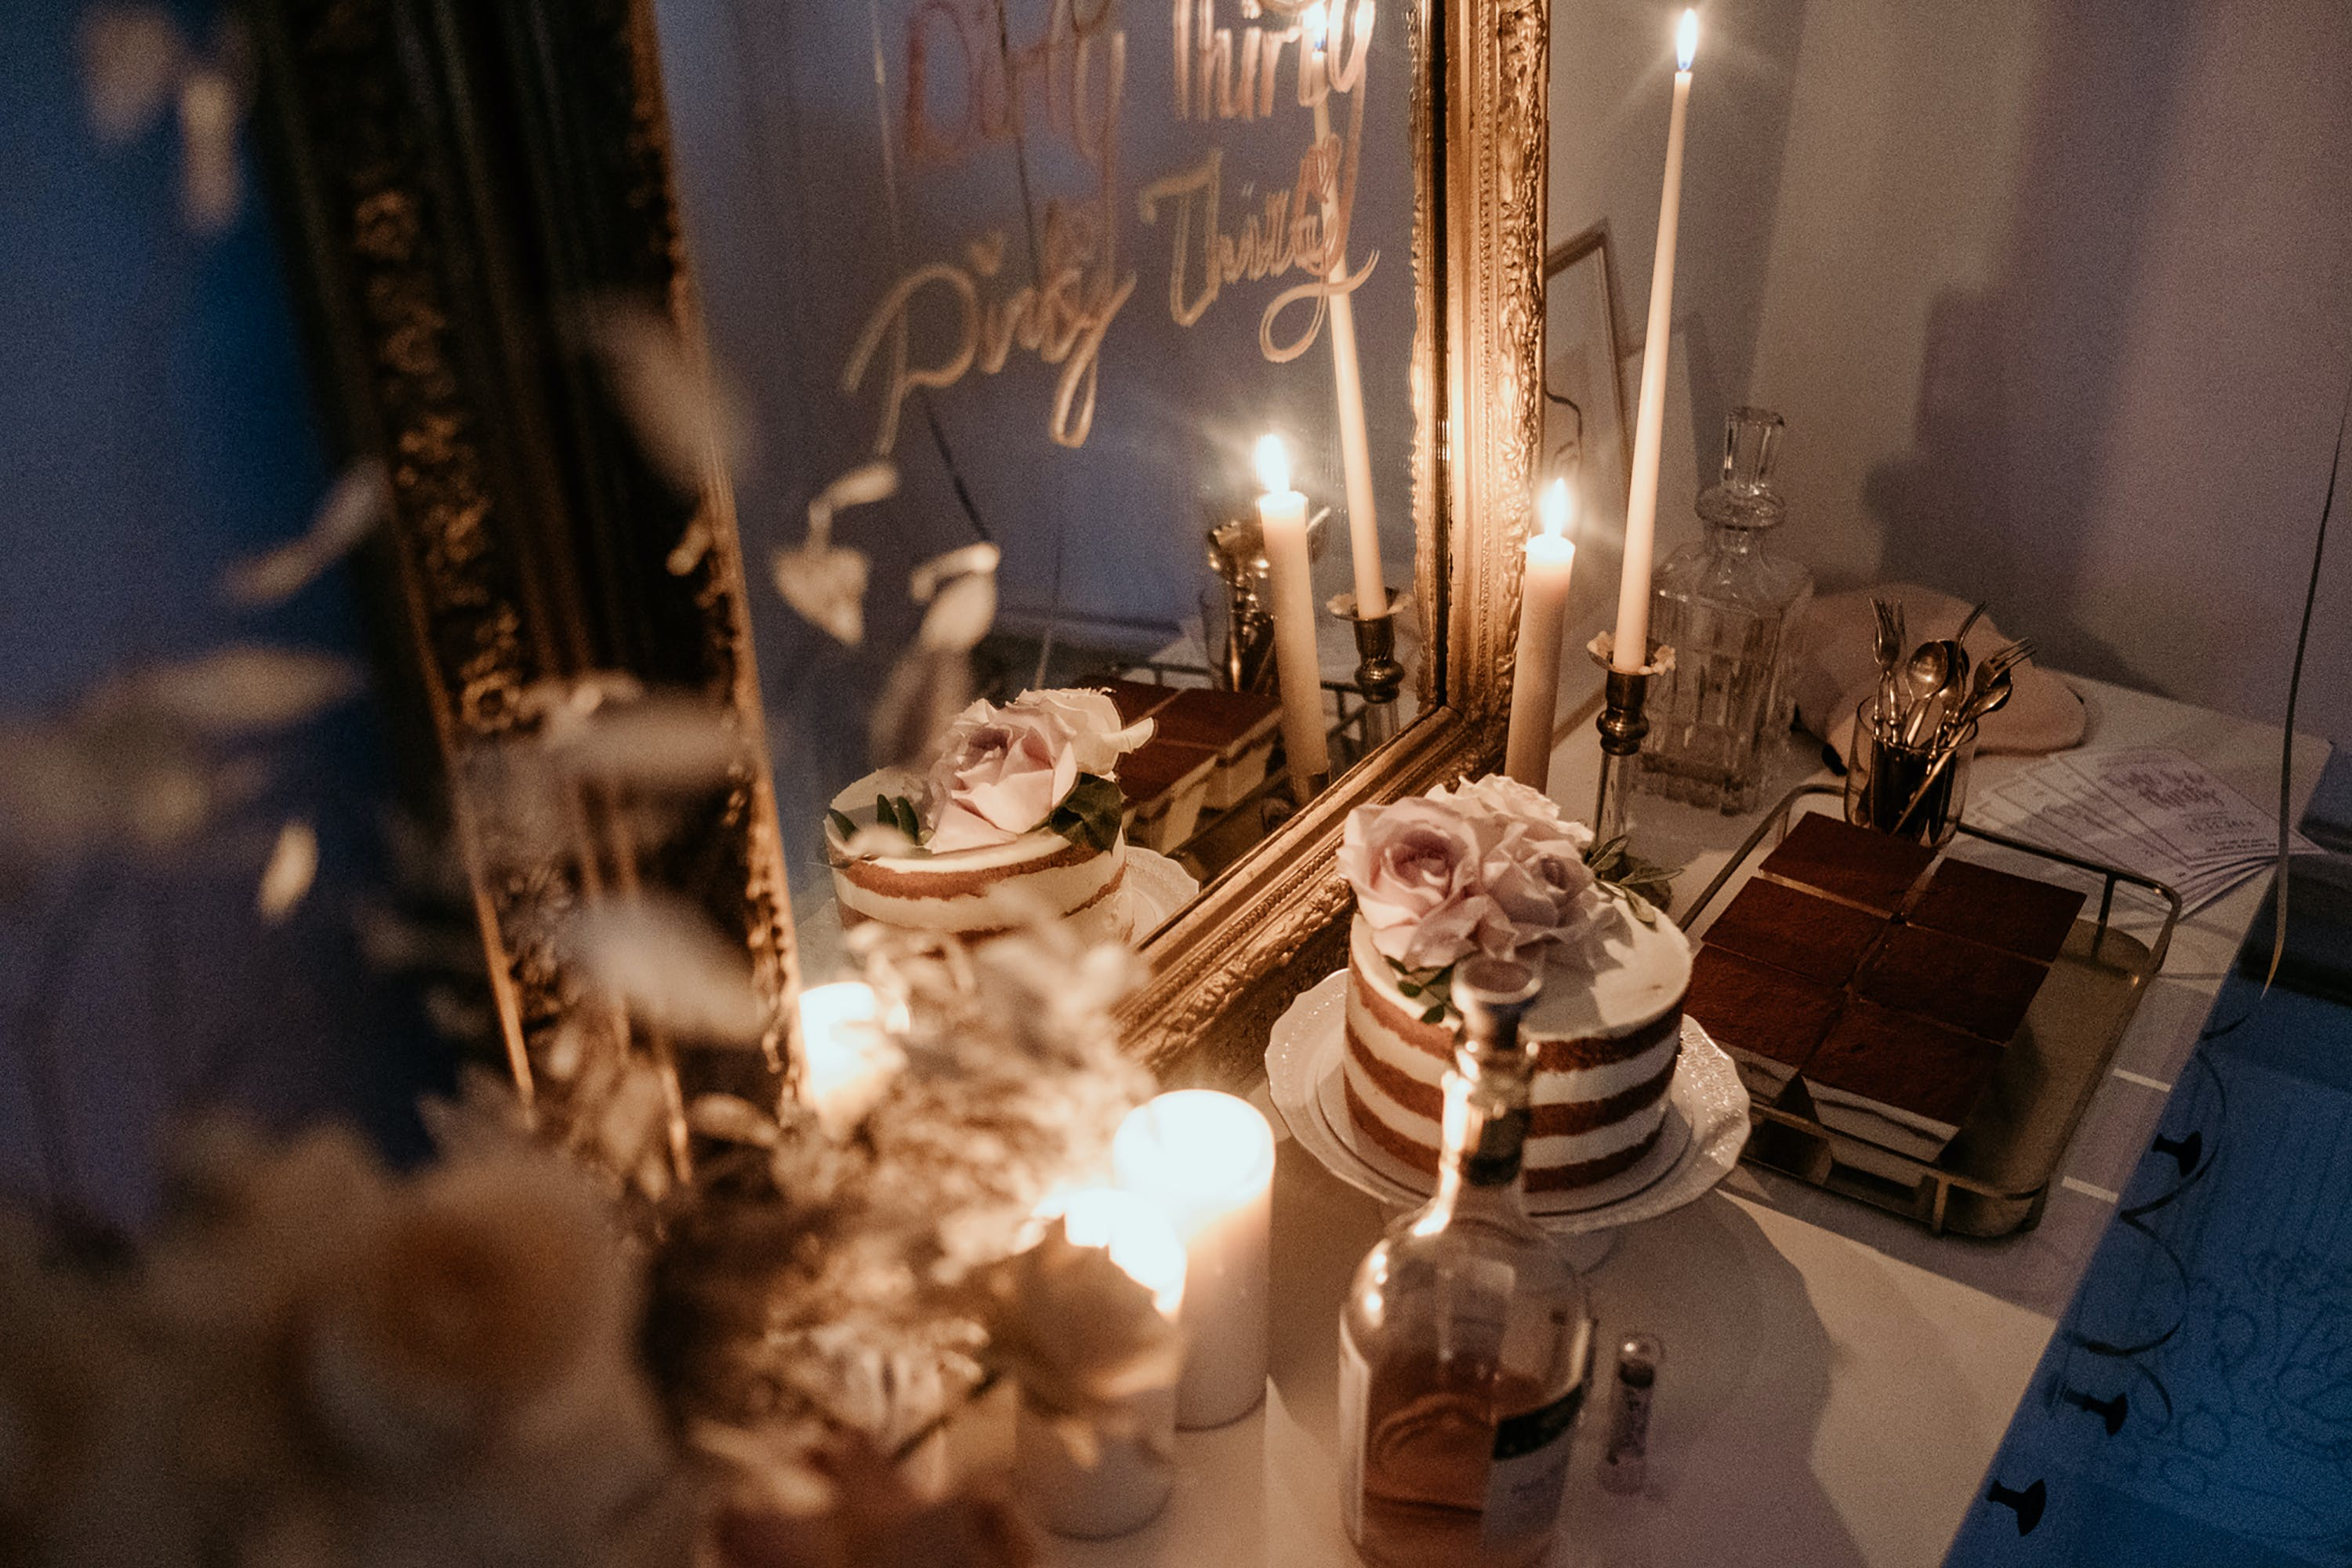 Cake and Candle on Table